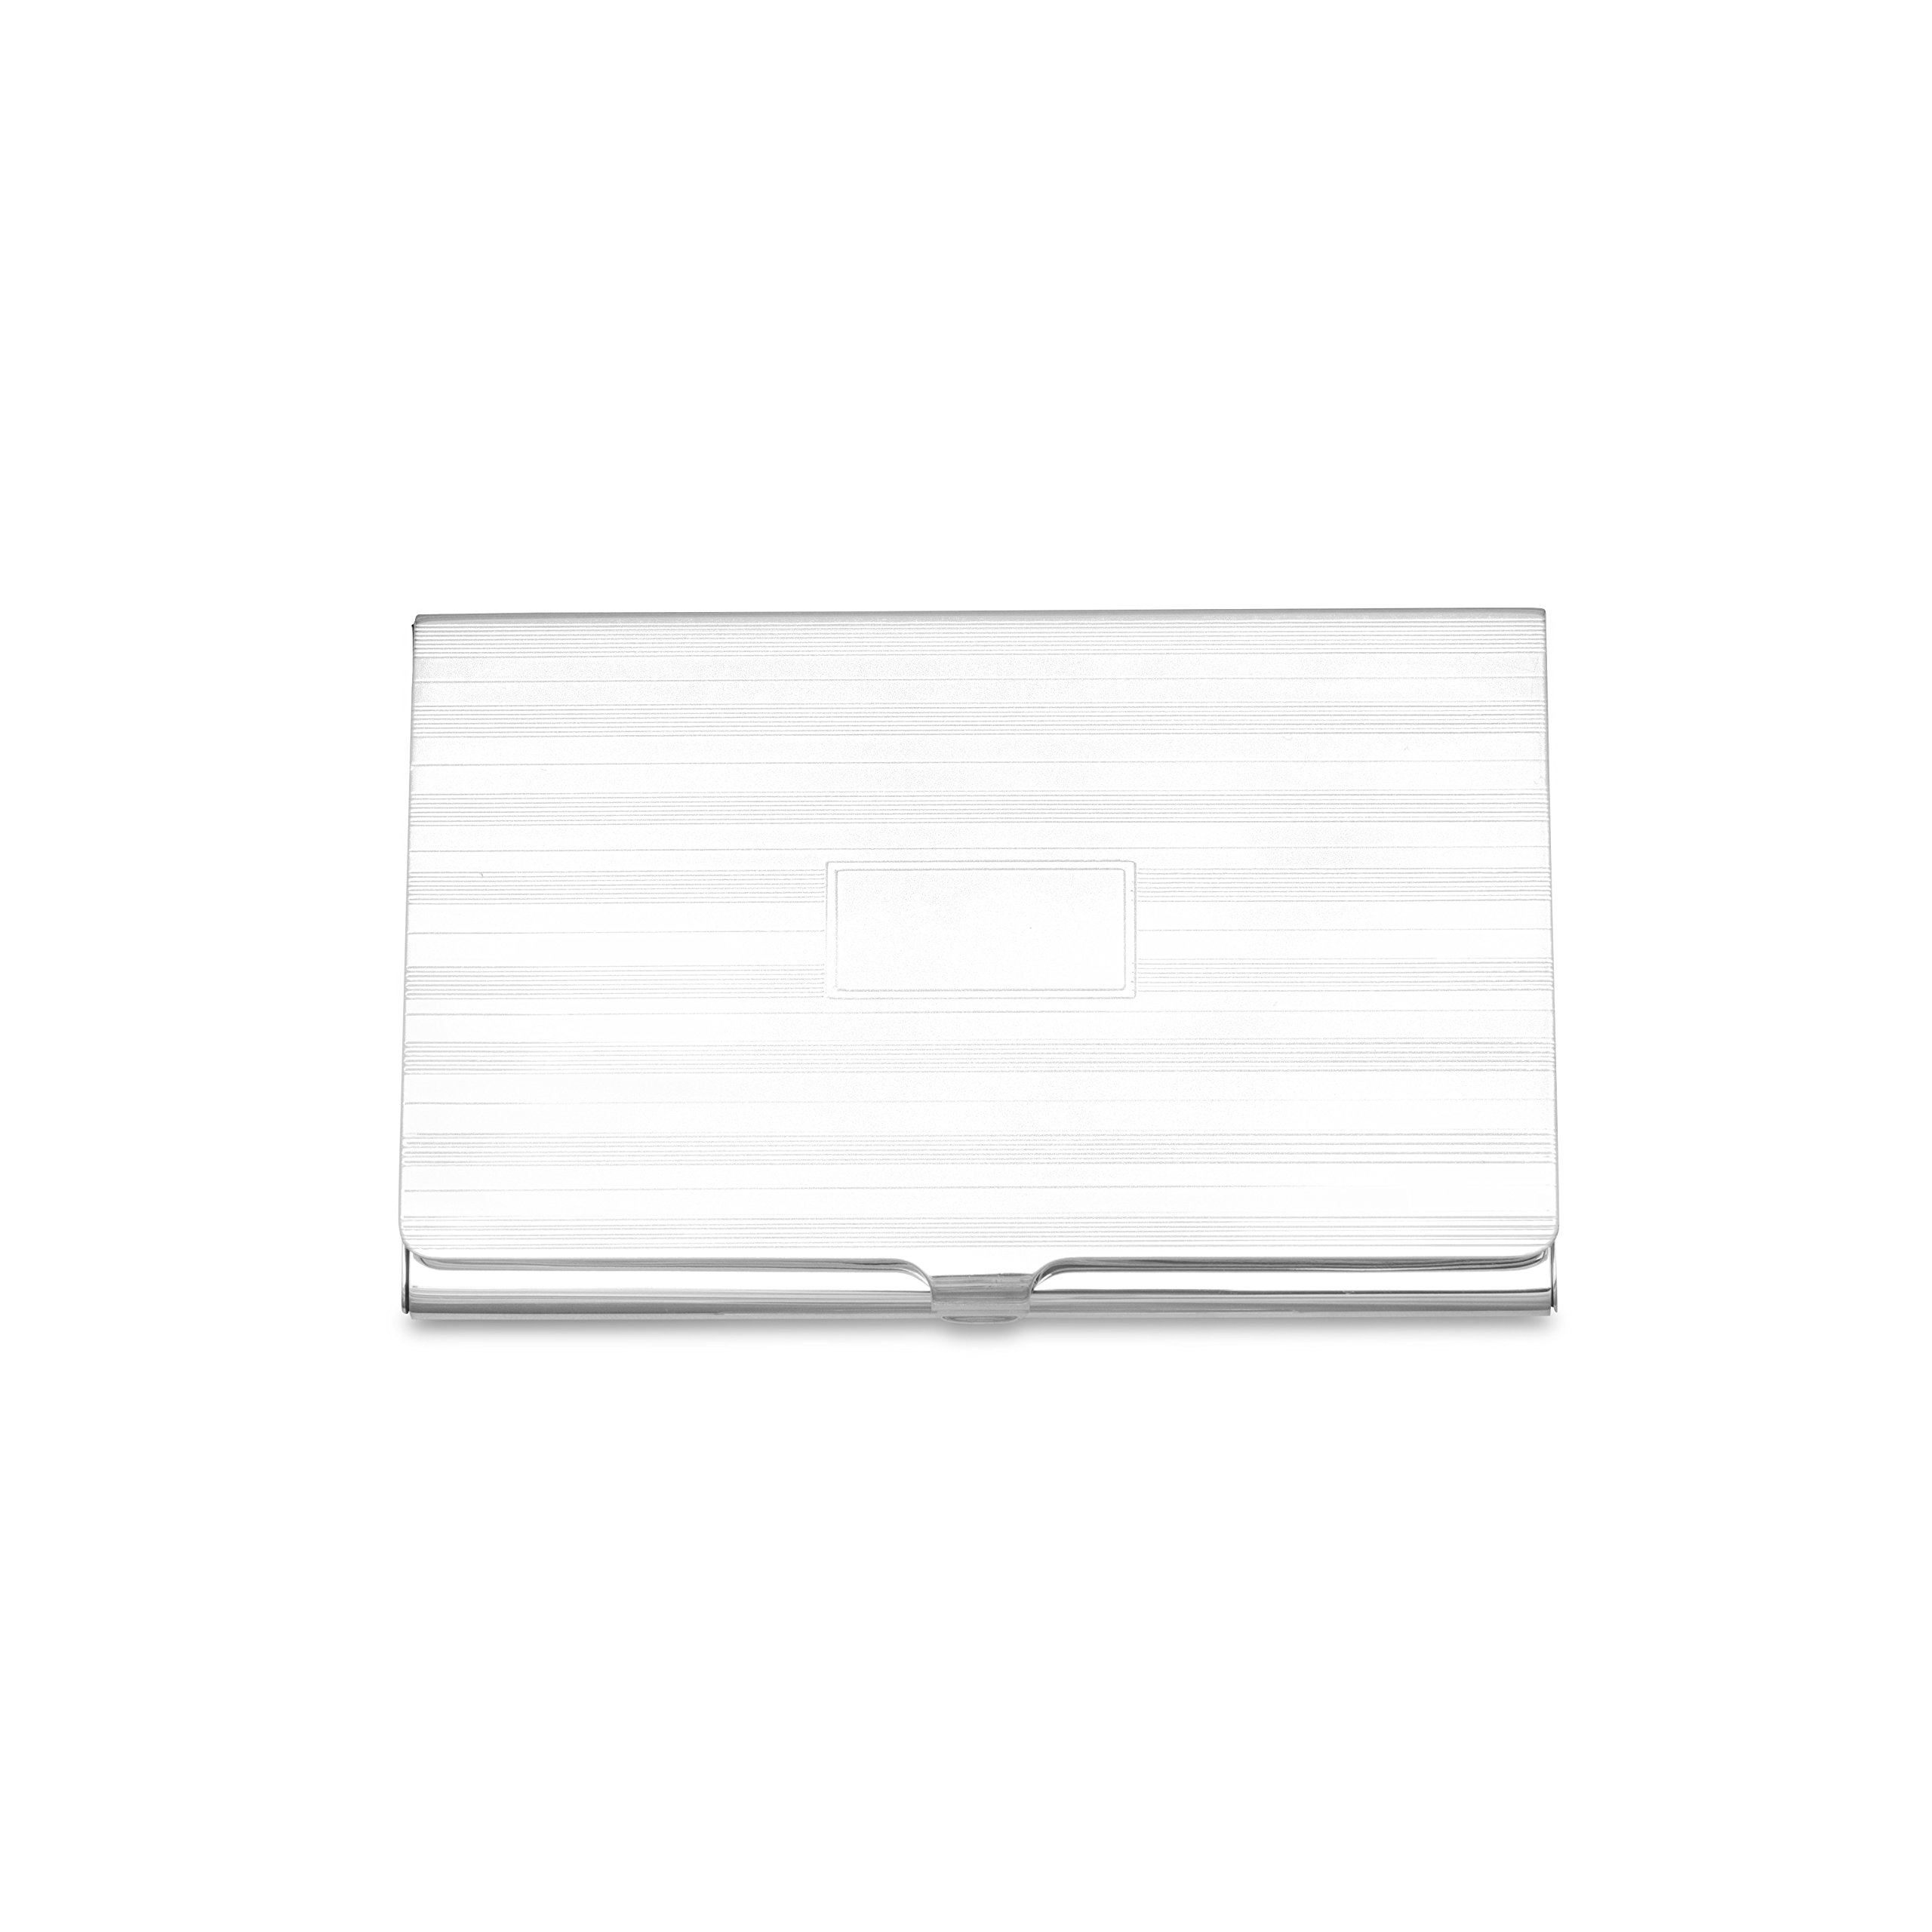 925 Sterling Silver Business Card Holder by West Coast Jewelry